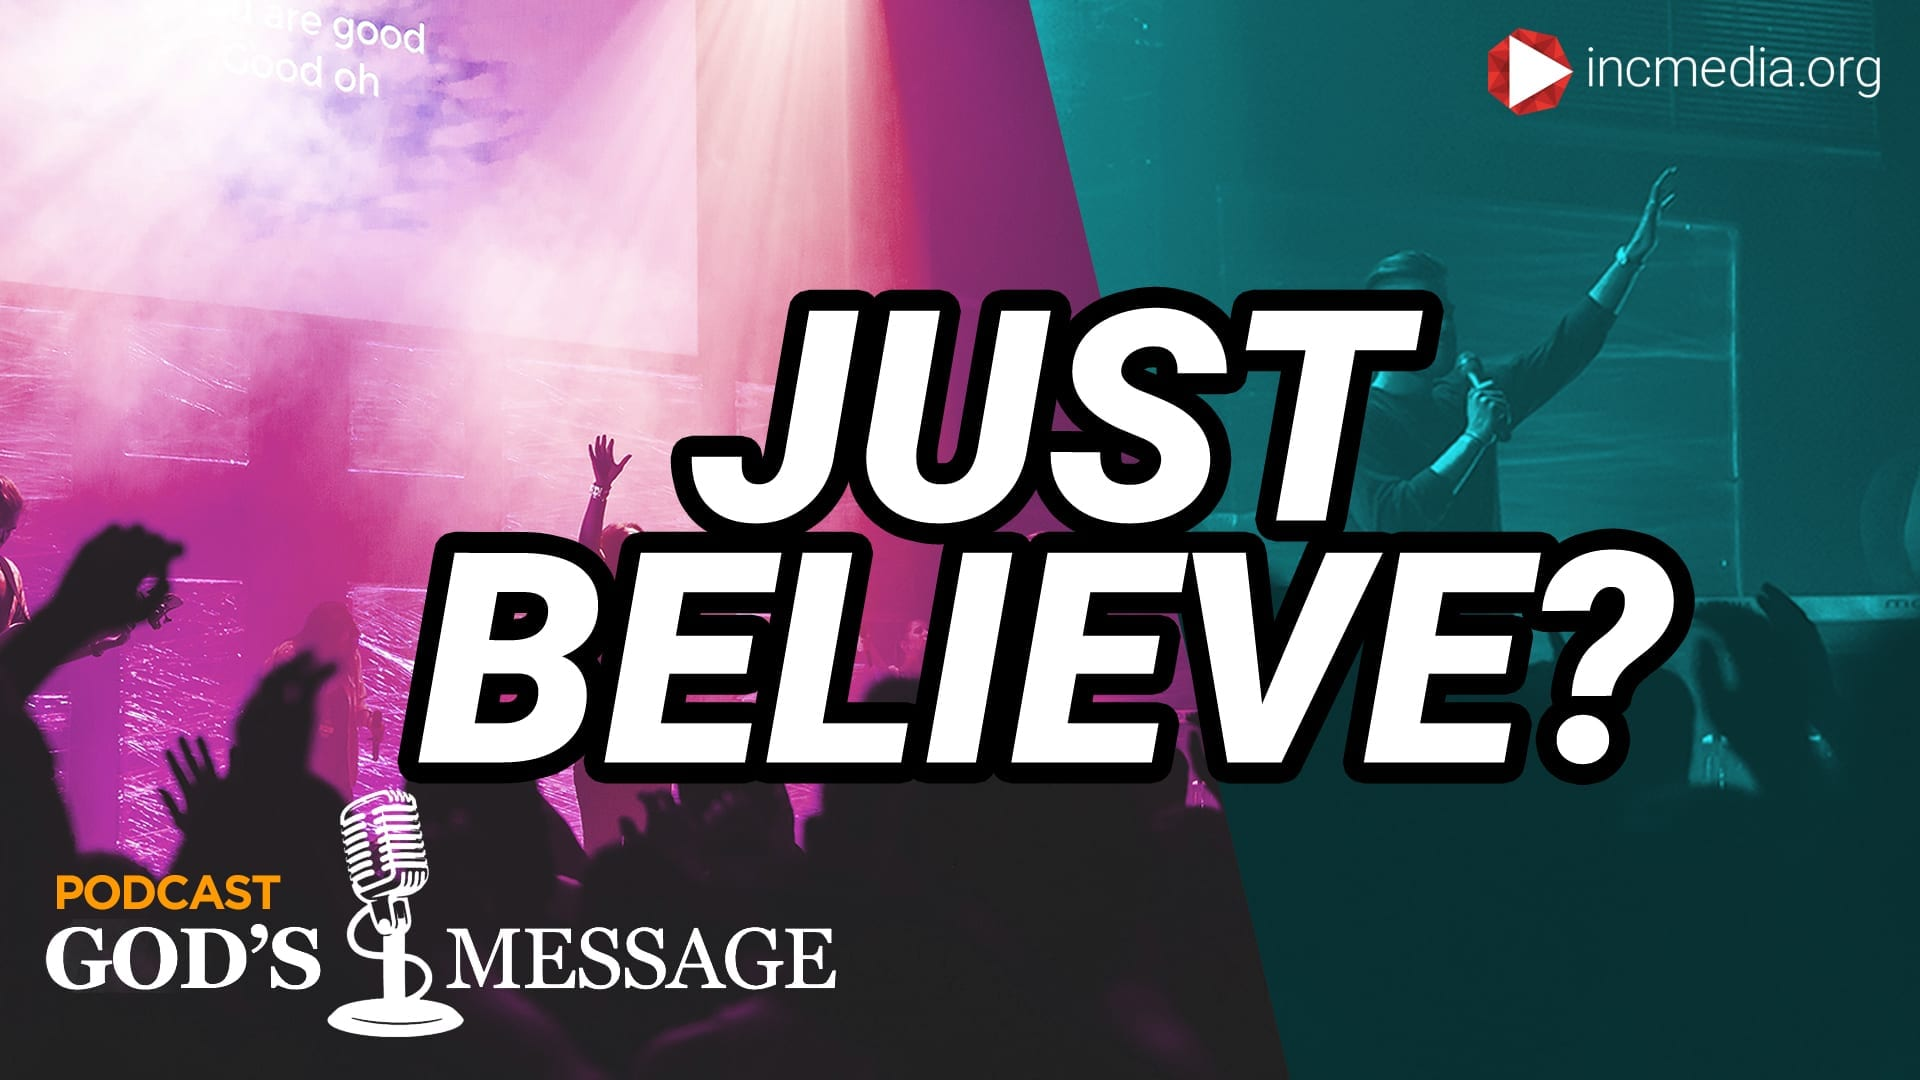 """Religious concert with overlay text of """"Just Believe?"""""""